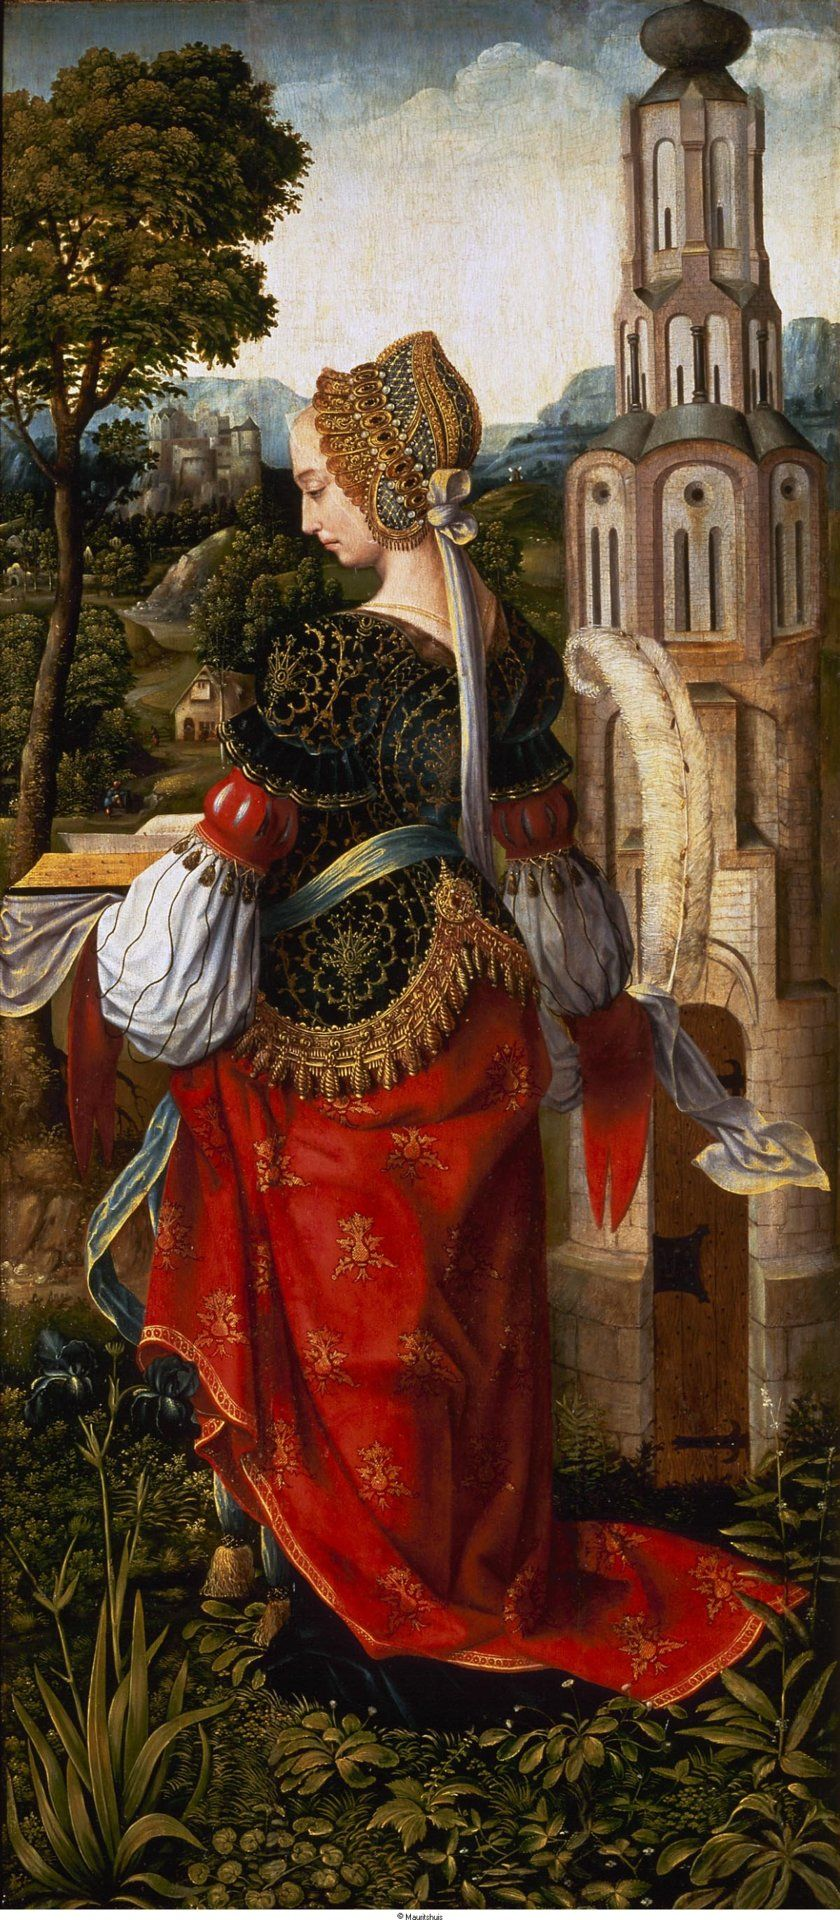 The Holy Barbara Side Hatch Of A Triptych Ca 1520 The Master Of Frankfurt Flemish Renaissance Painter 1460 Ca Renaissance Art Renaissance Paintings Art